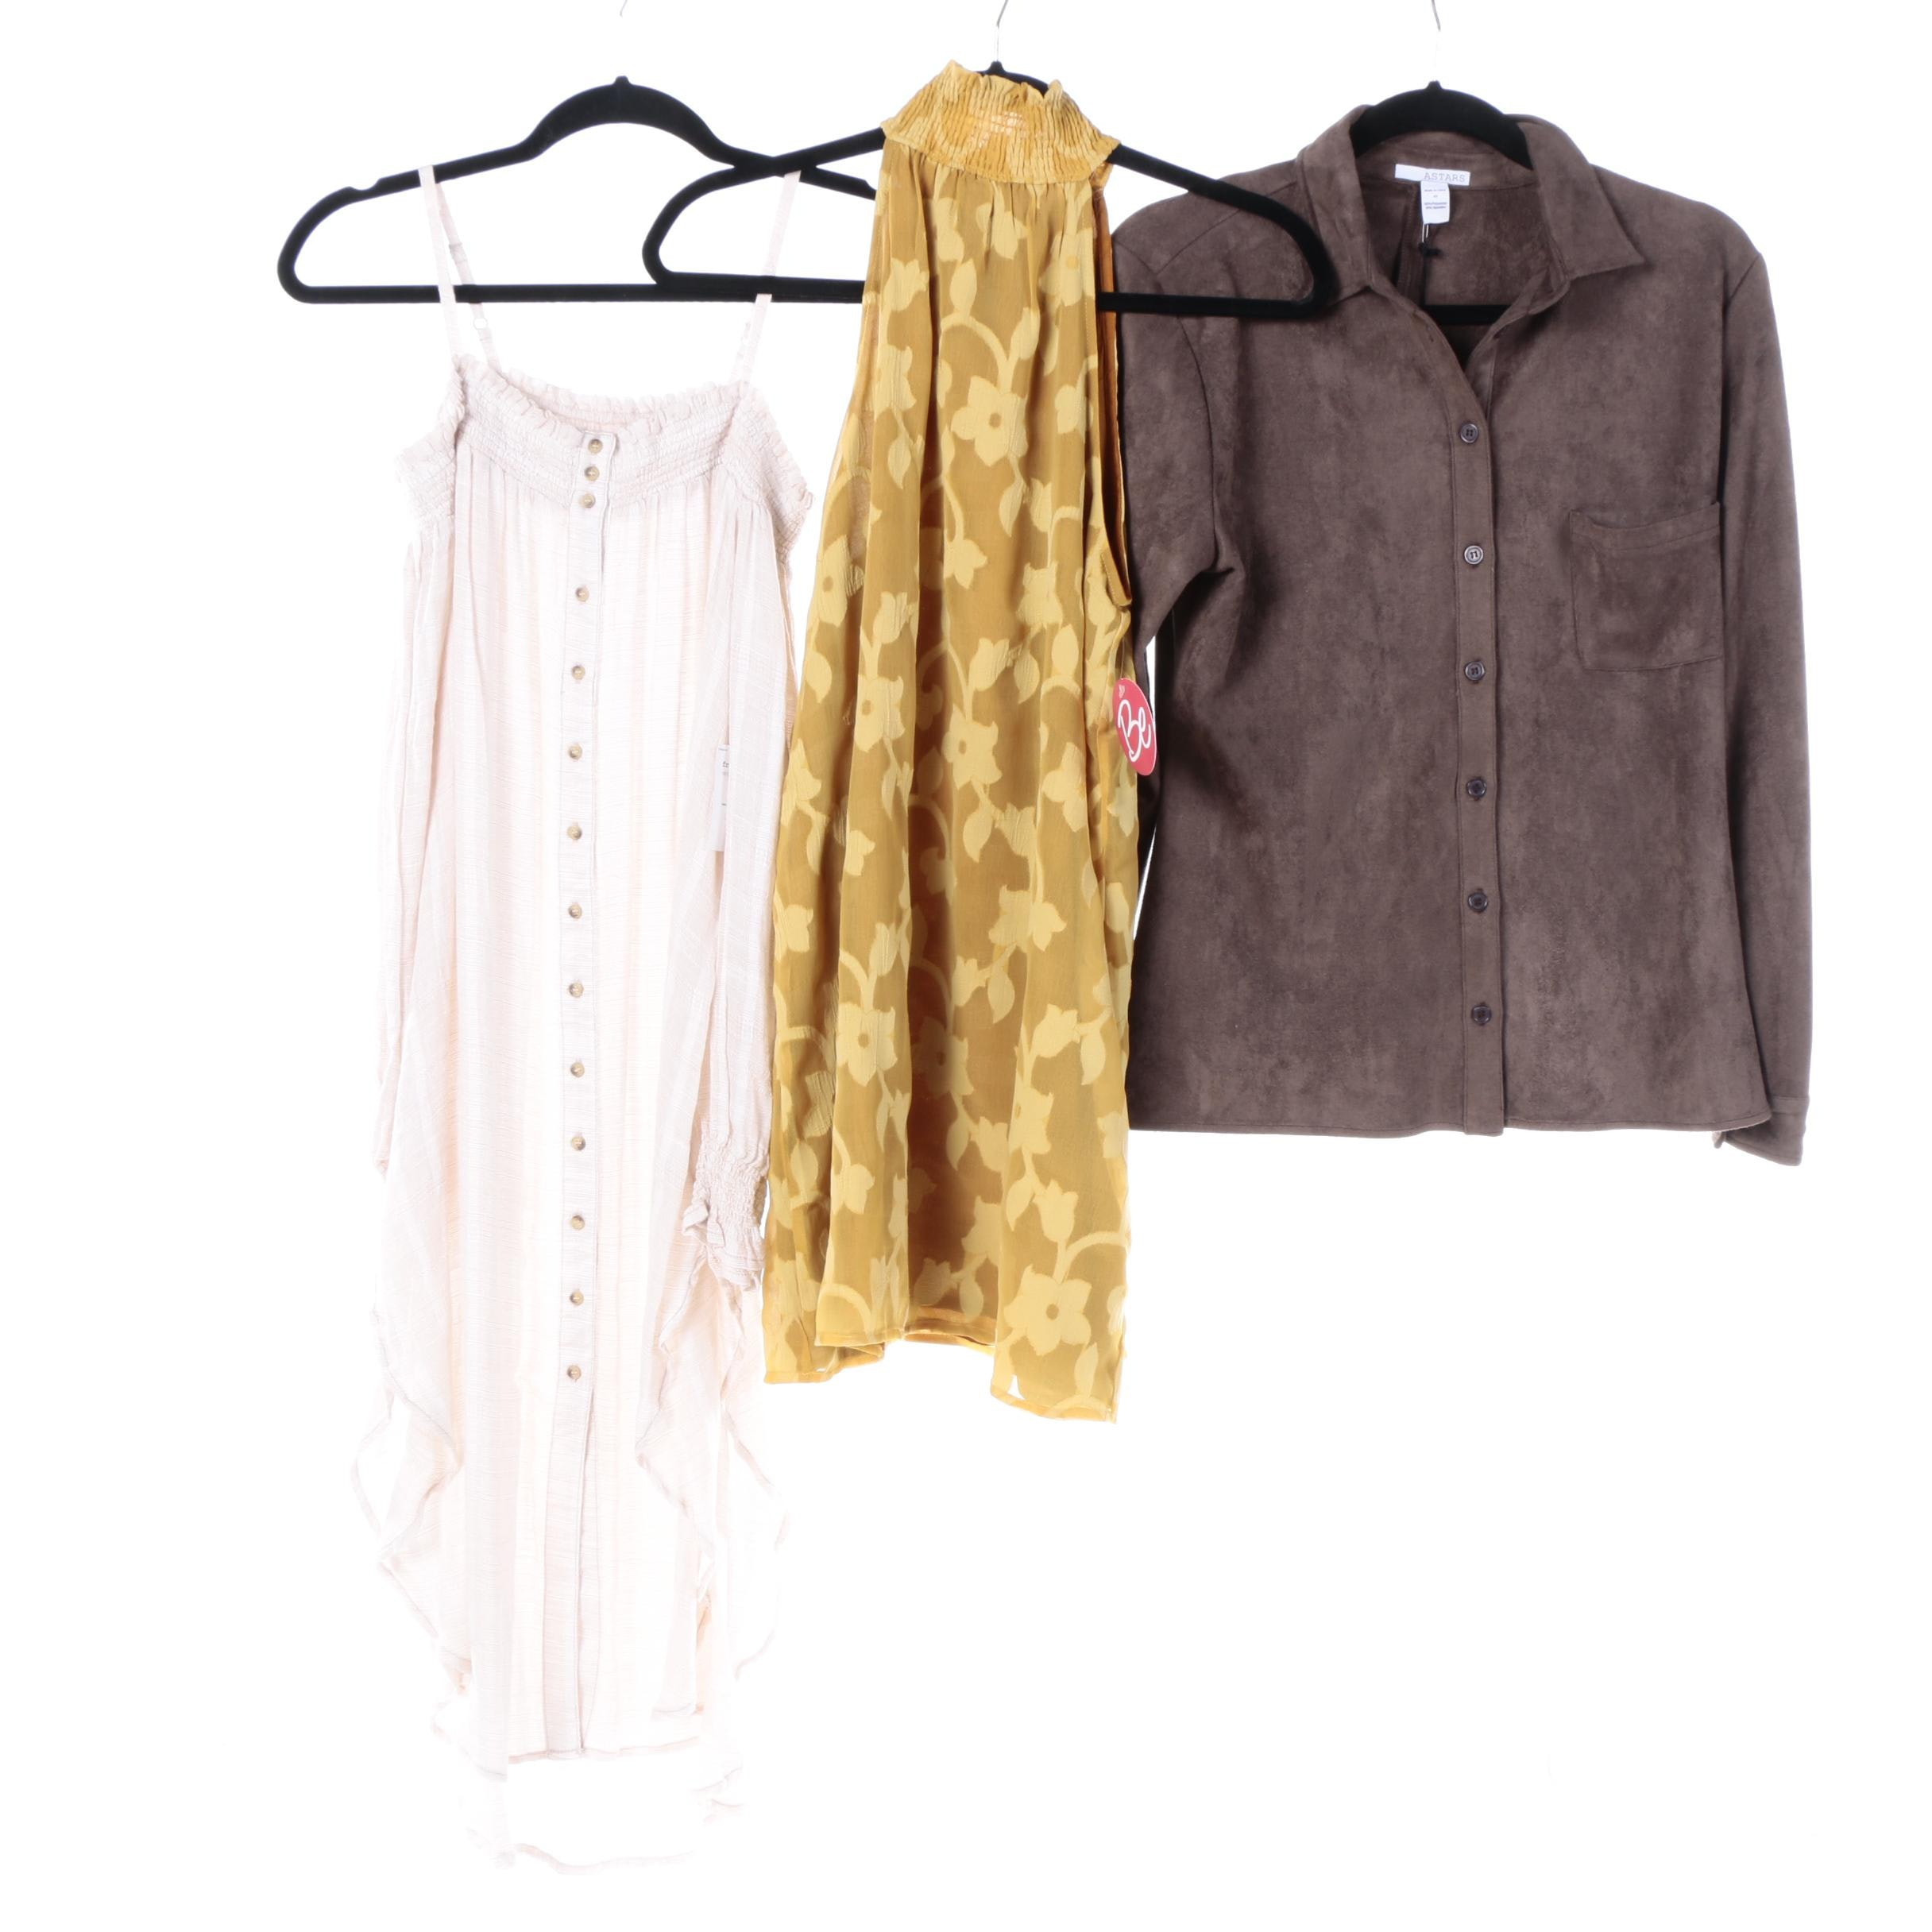 Women's Clothing Including Free People